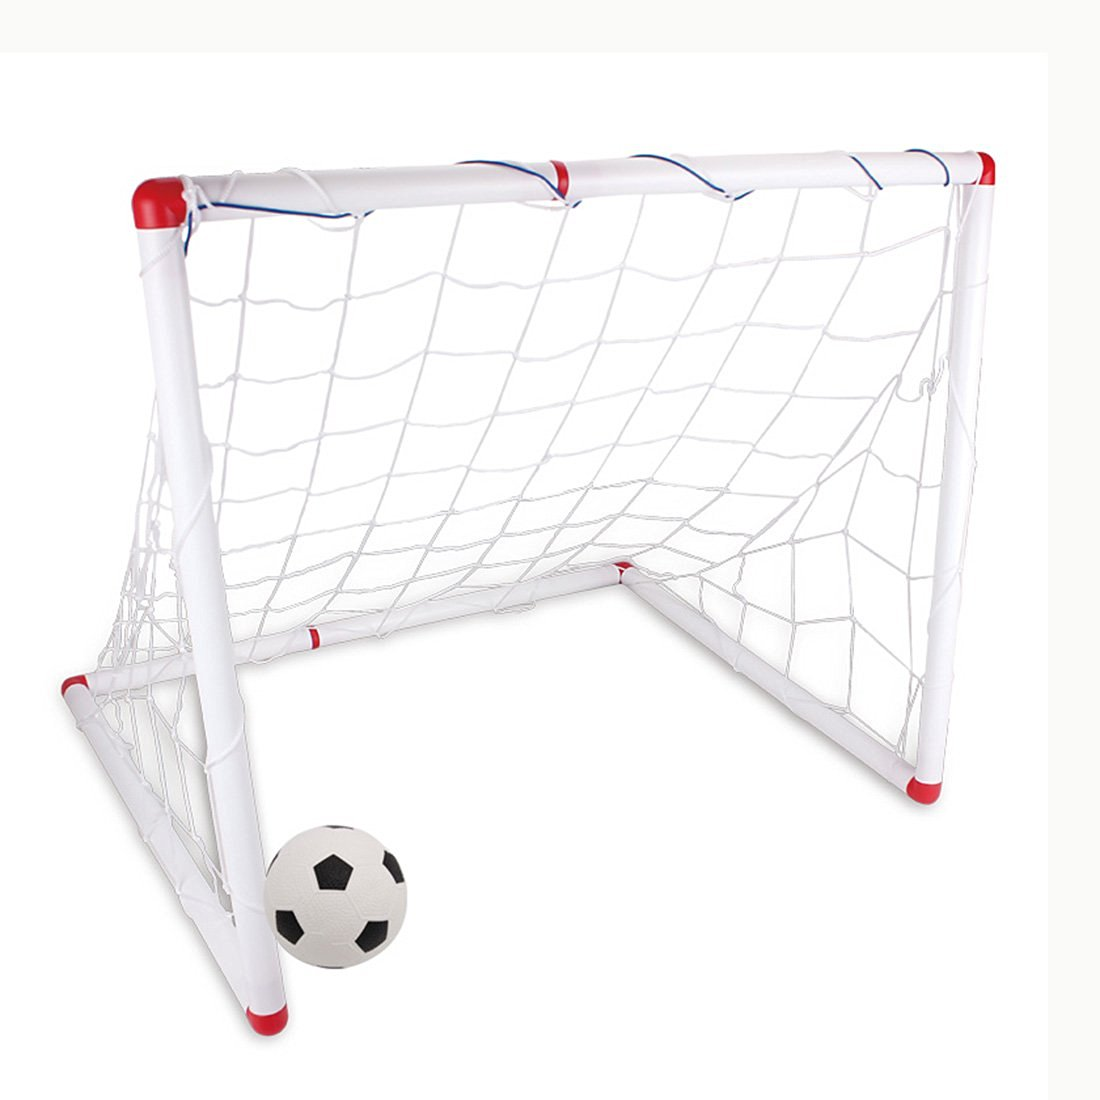 Soccer Goals, FINER Large Size 90cm DIY Youth Sports Soccer Goals with Soccer Ball and Pump Practice Scrimmage Game - White